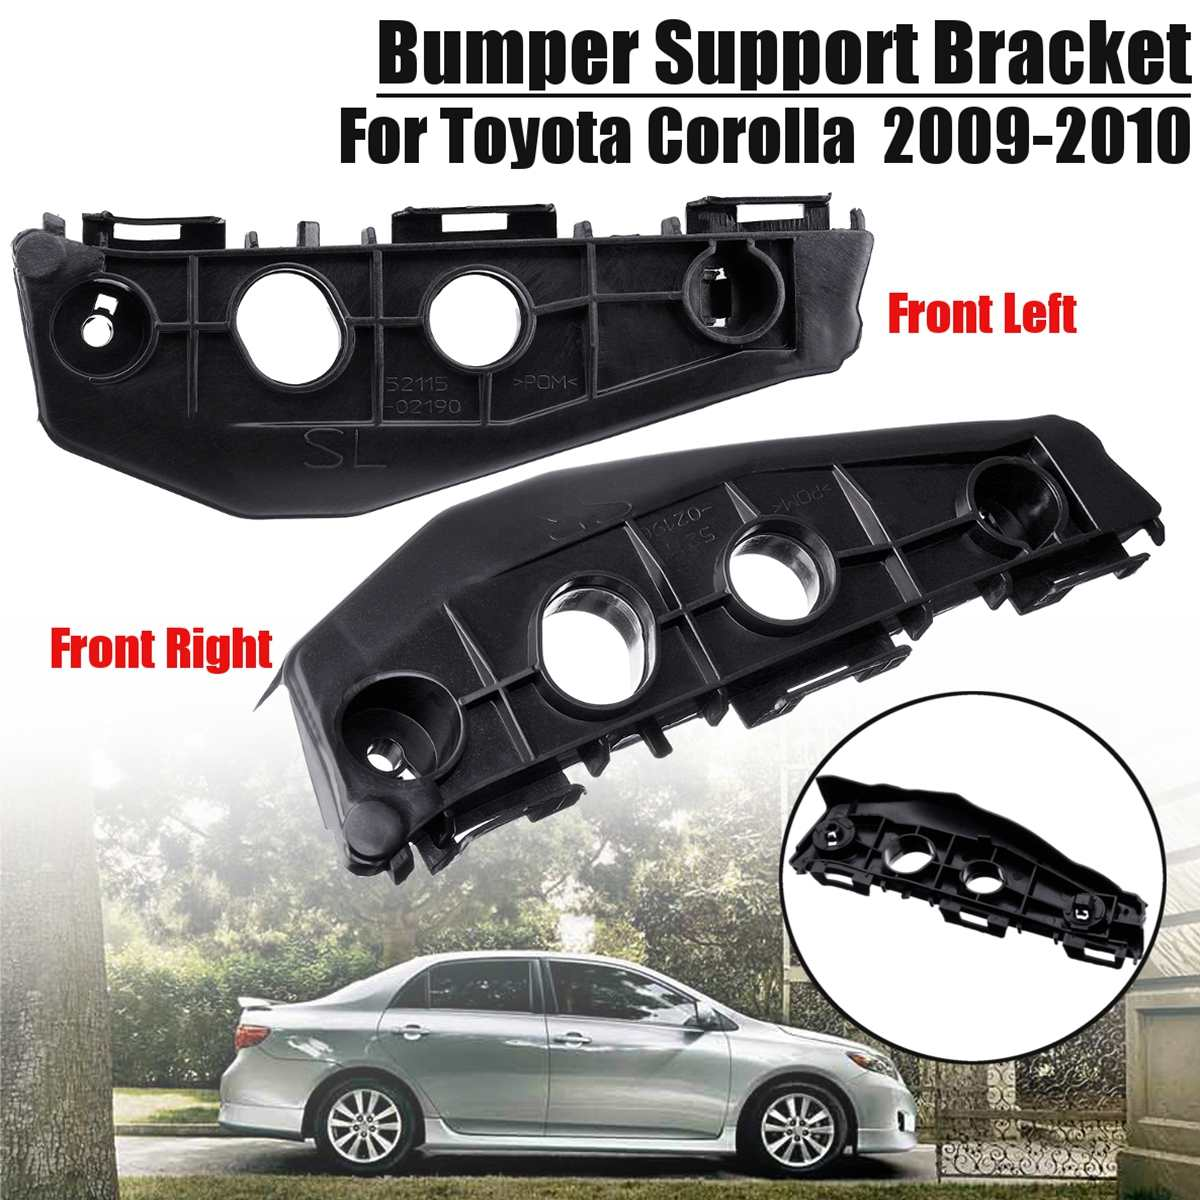 1 Pair Front Left Right Bumper Spacer Bracket Mount Black For Toyota Corolla 2009 2010 TO1043110 5211502130